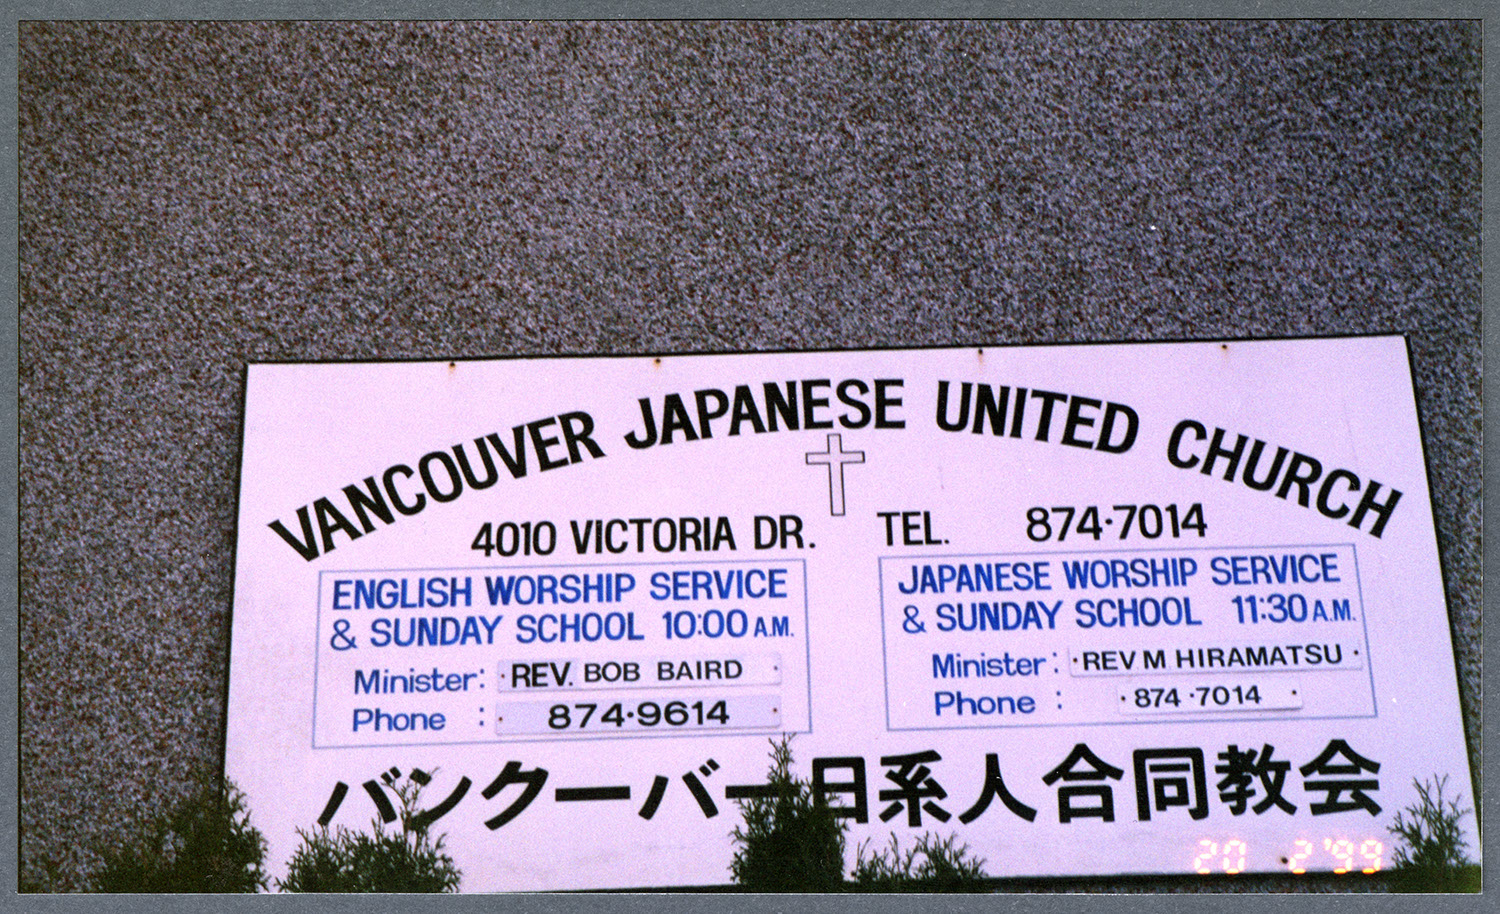 Vancouver Japanese United Church sign